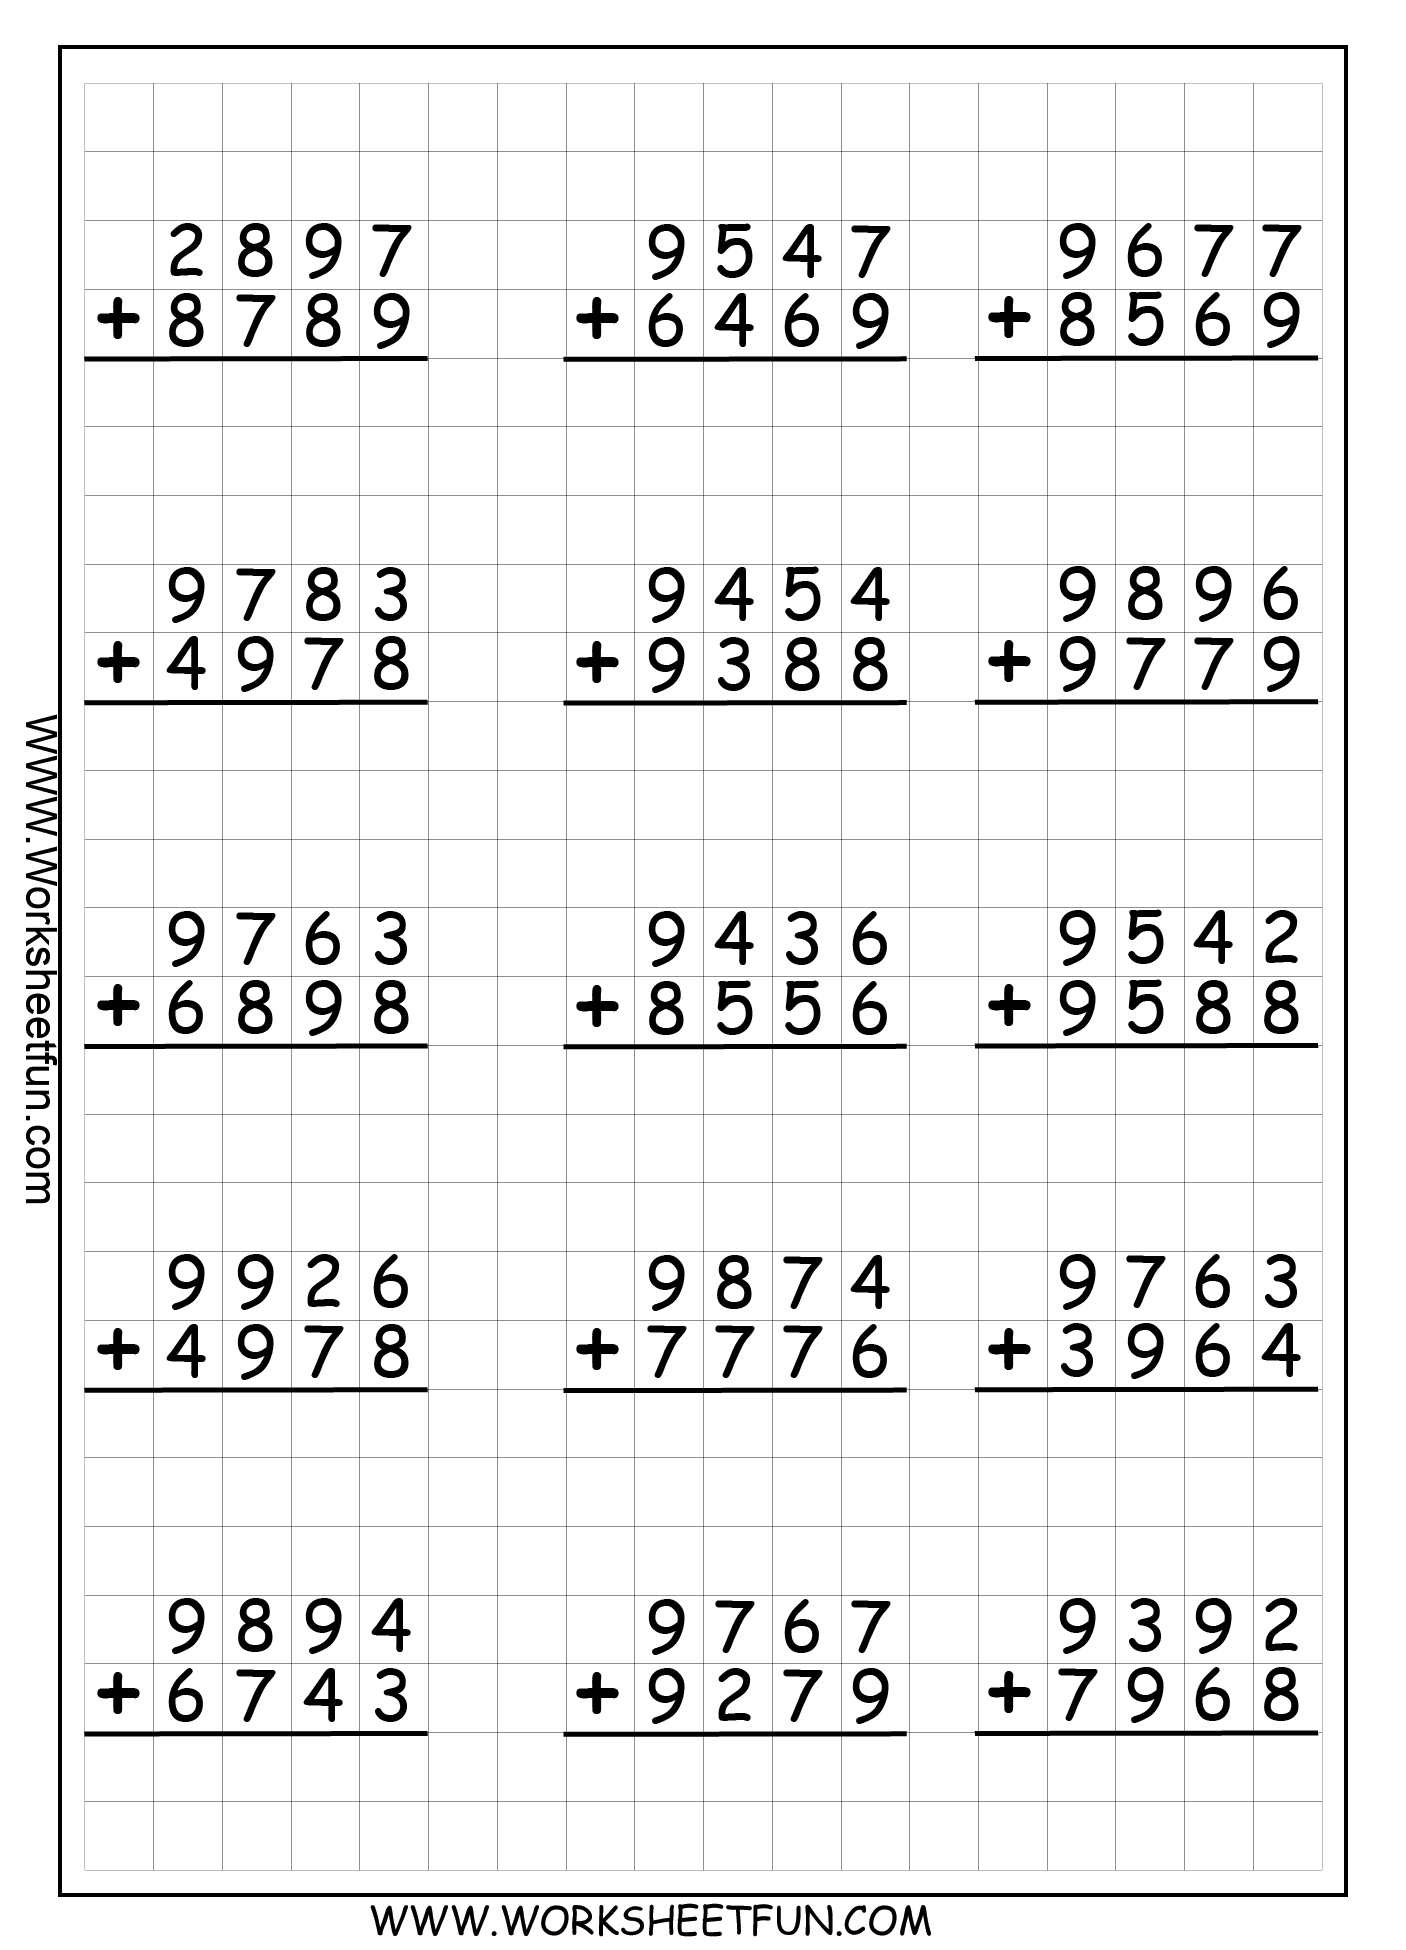 Missing Number Worksheet